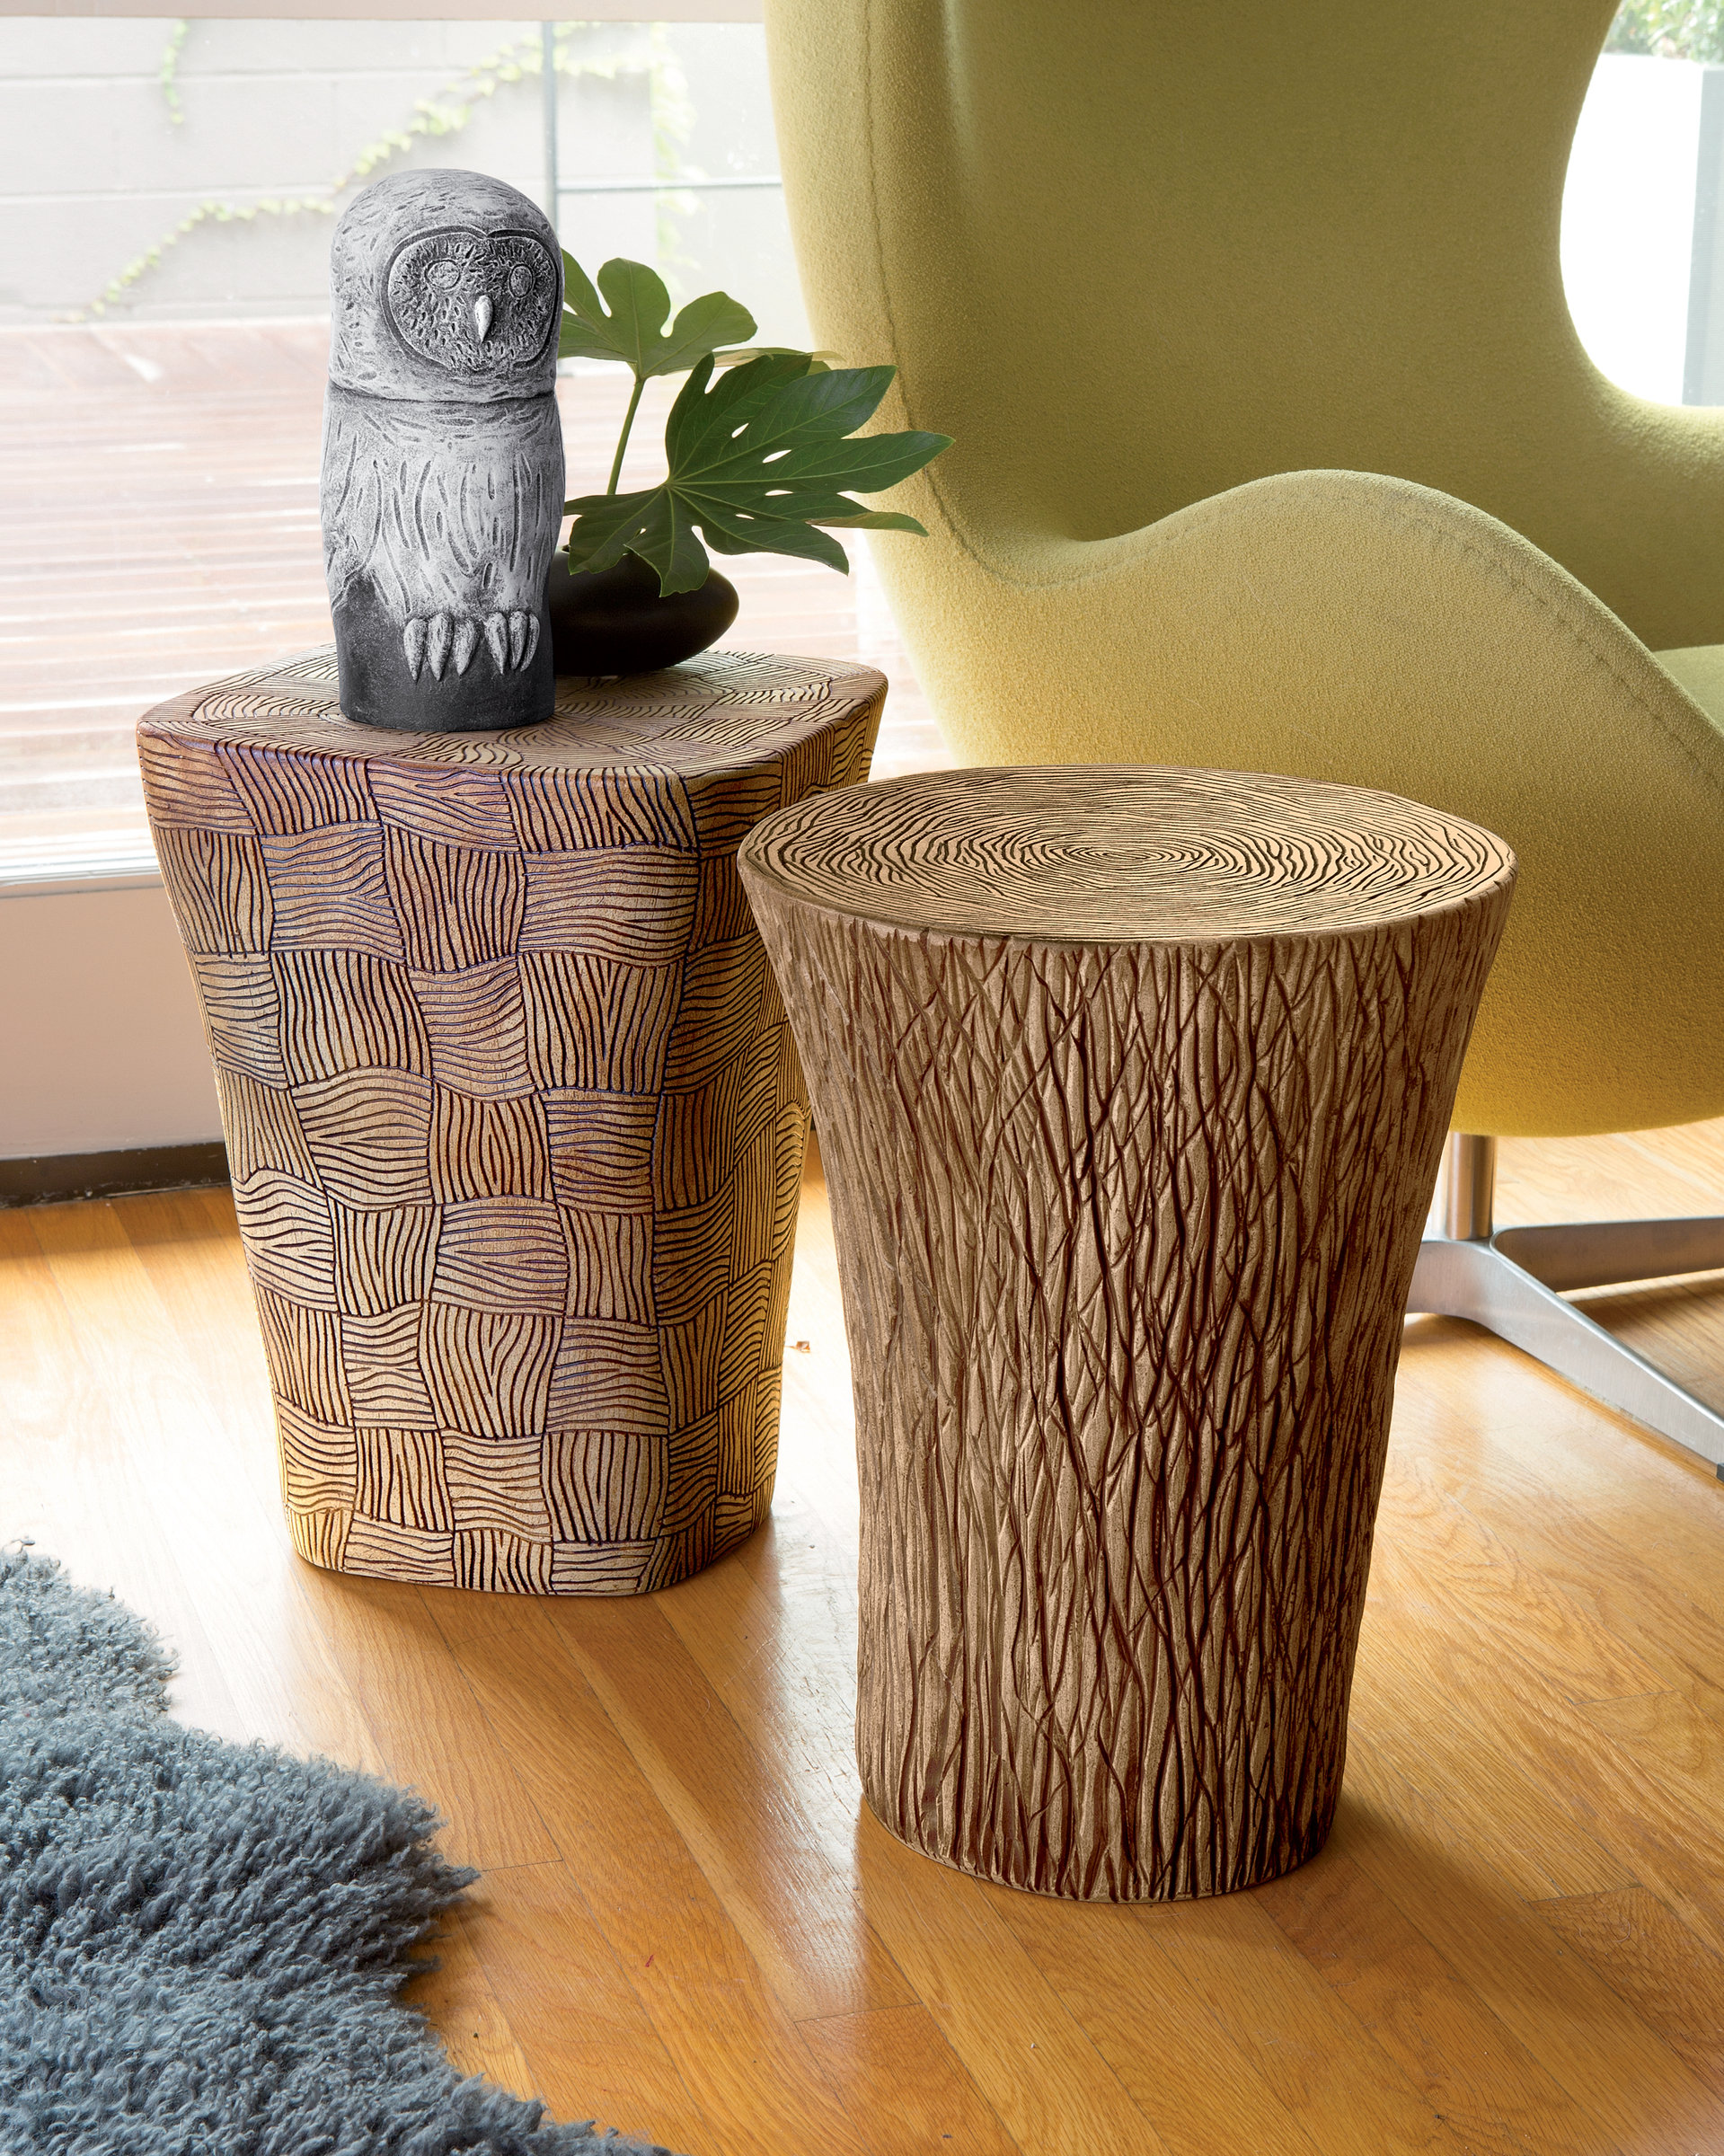 Stump And Woven Tables By Larry Halvorsen (Ceramic Side Table) | Artful Home